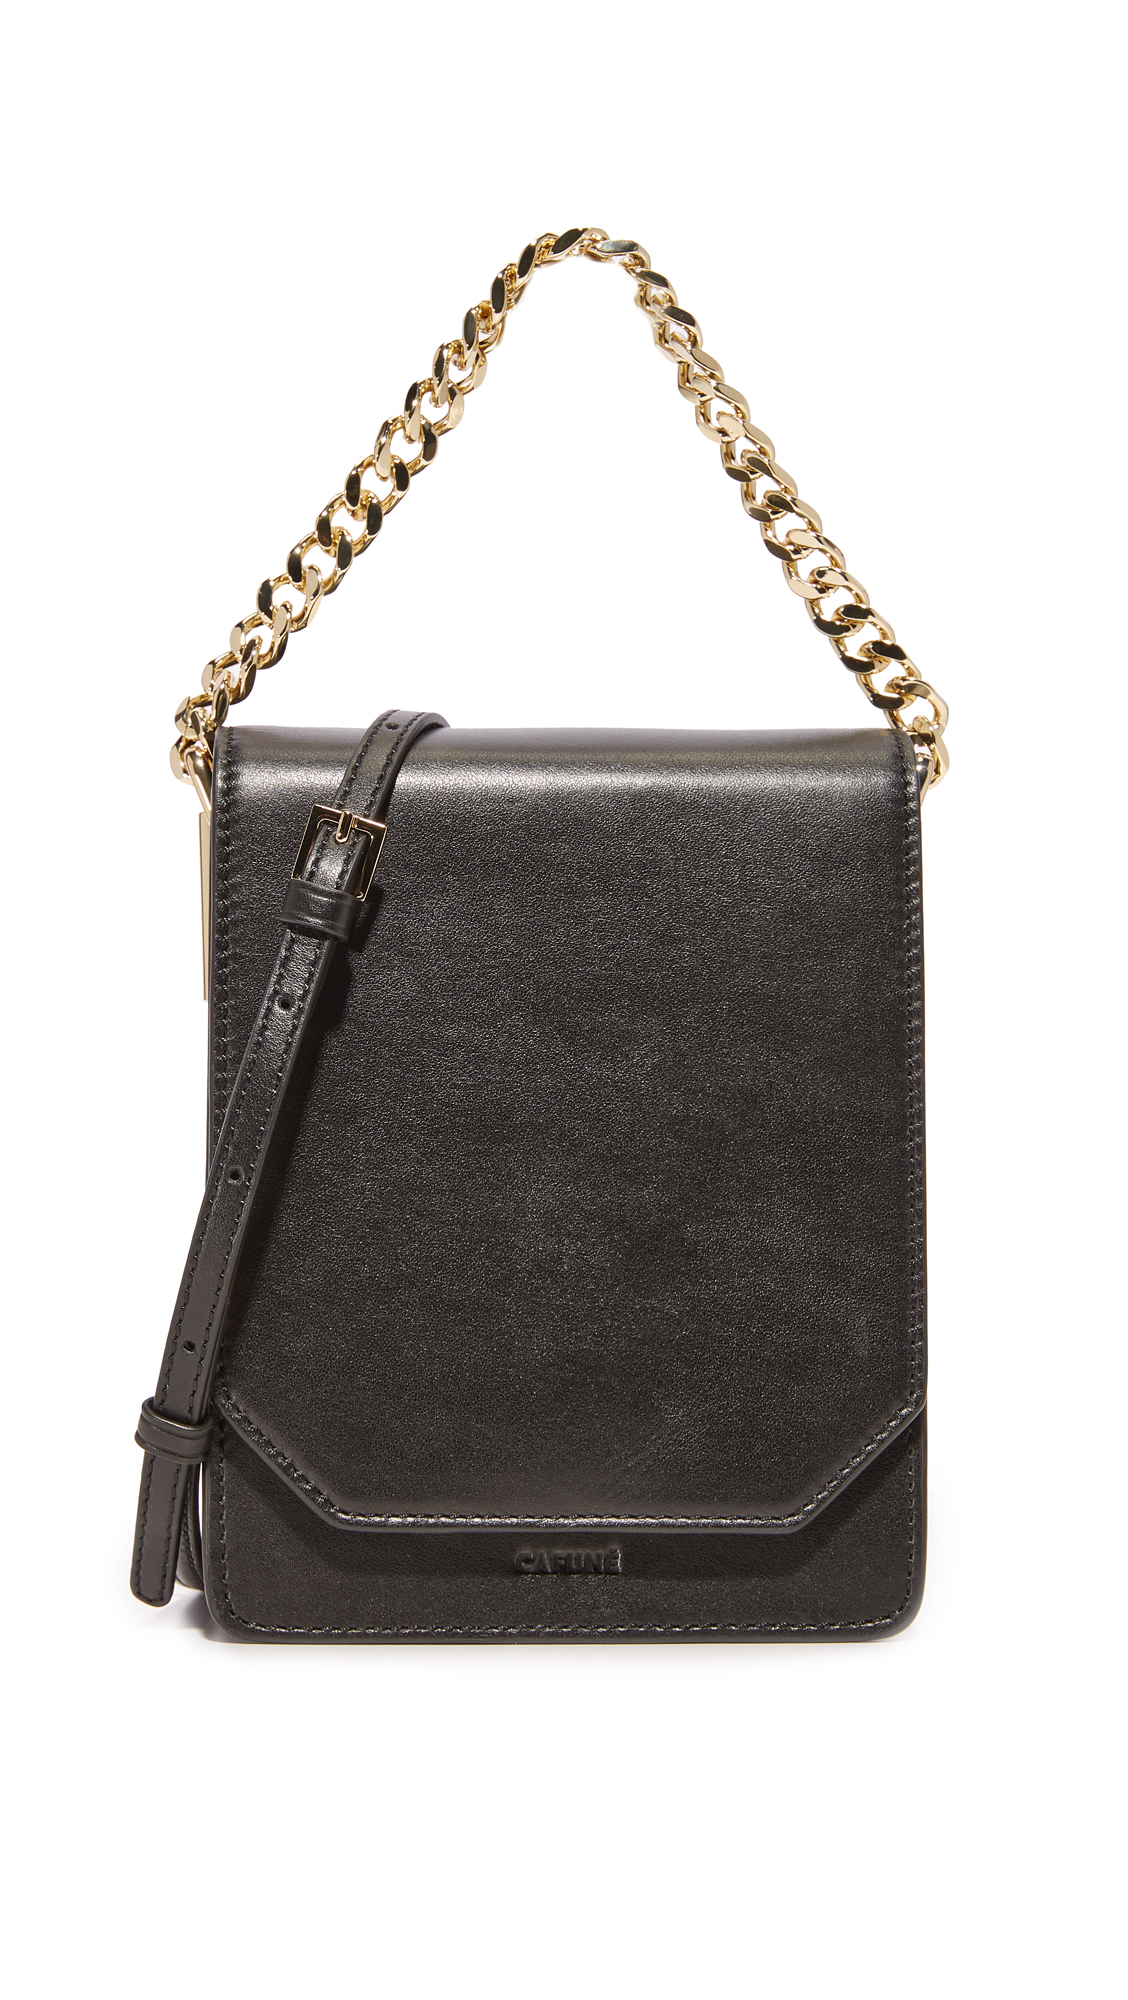 Cafune Bellows Cross Body Bag In Black